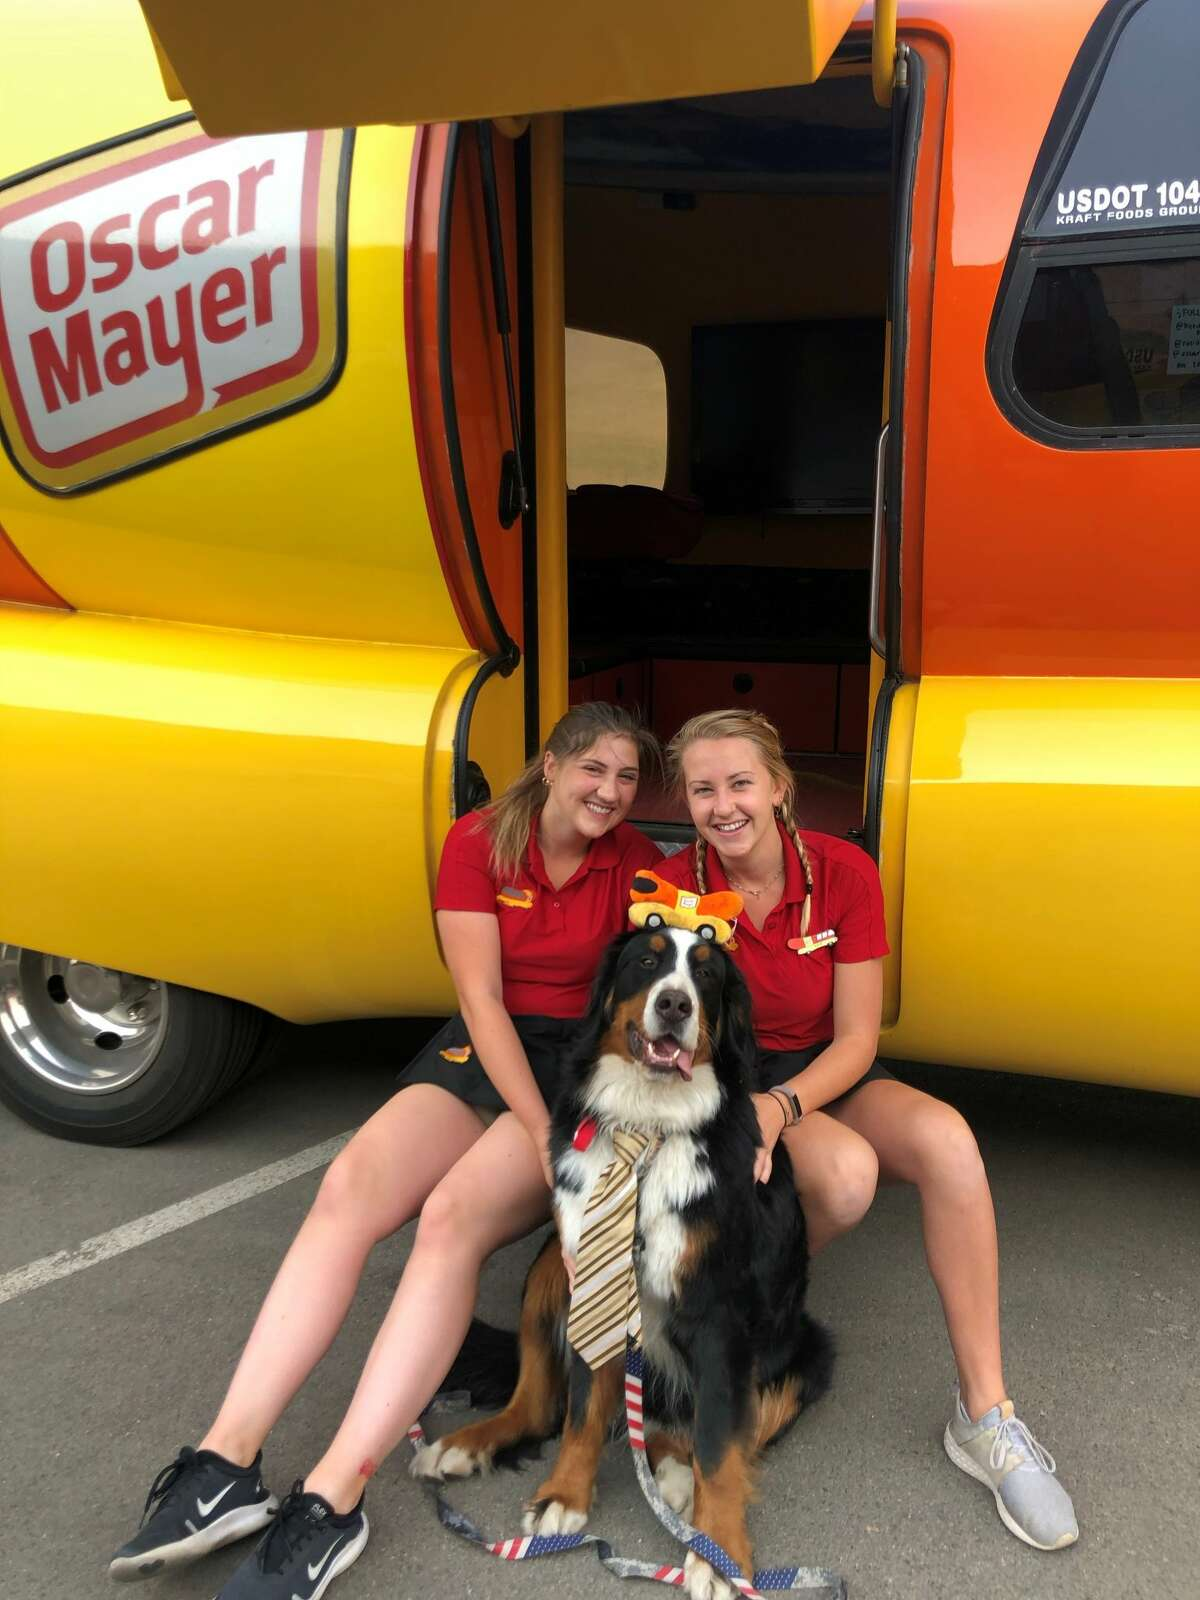 Hotdoggers Katie Ferguson and Rachel Aul have arrived with the 27-foot long hot dog on wheels to the Alamo City with one mission in mind: to put smiles on people's faces.